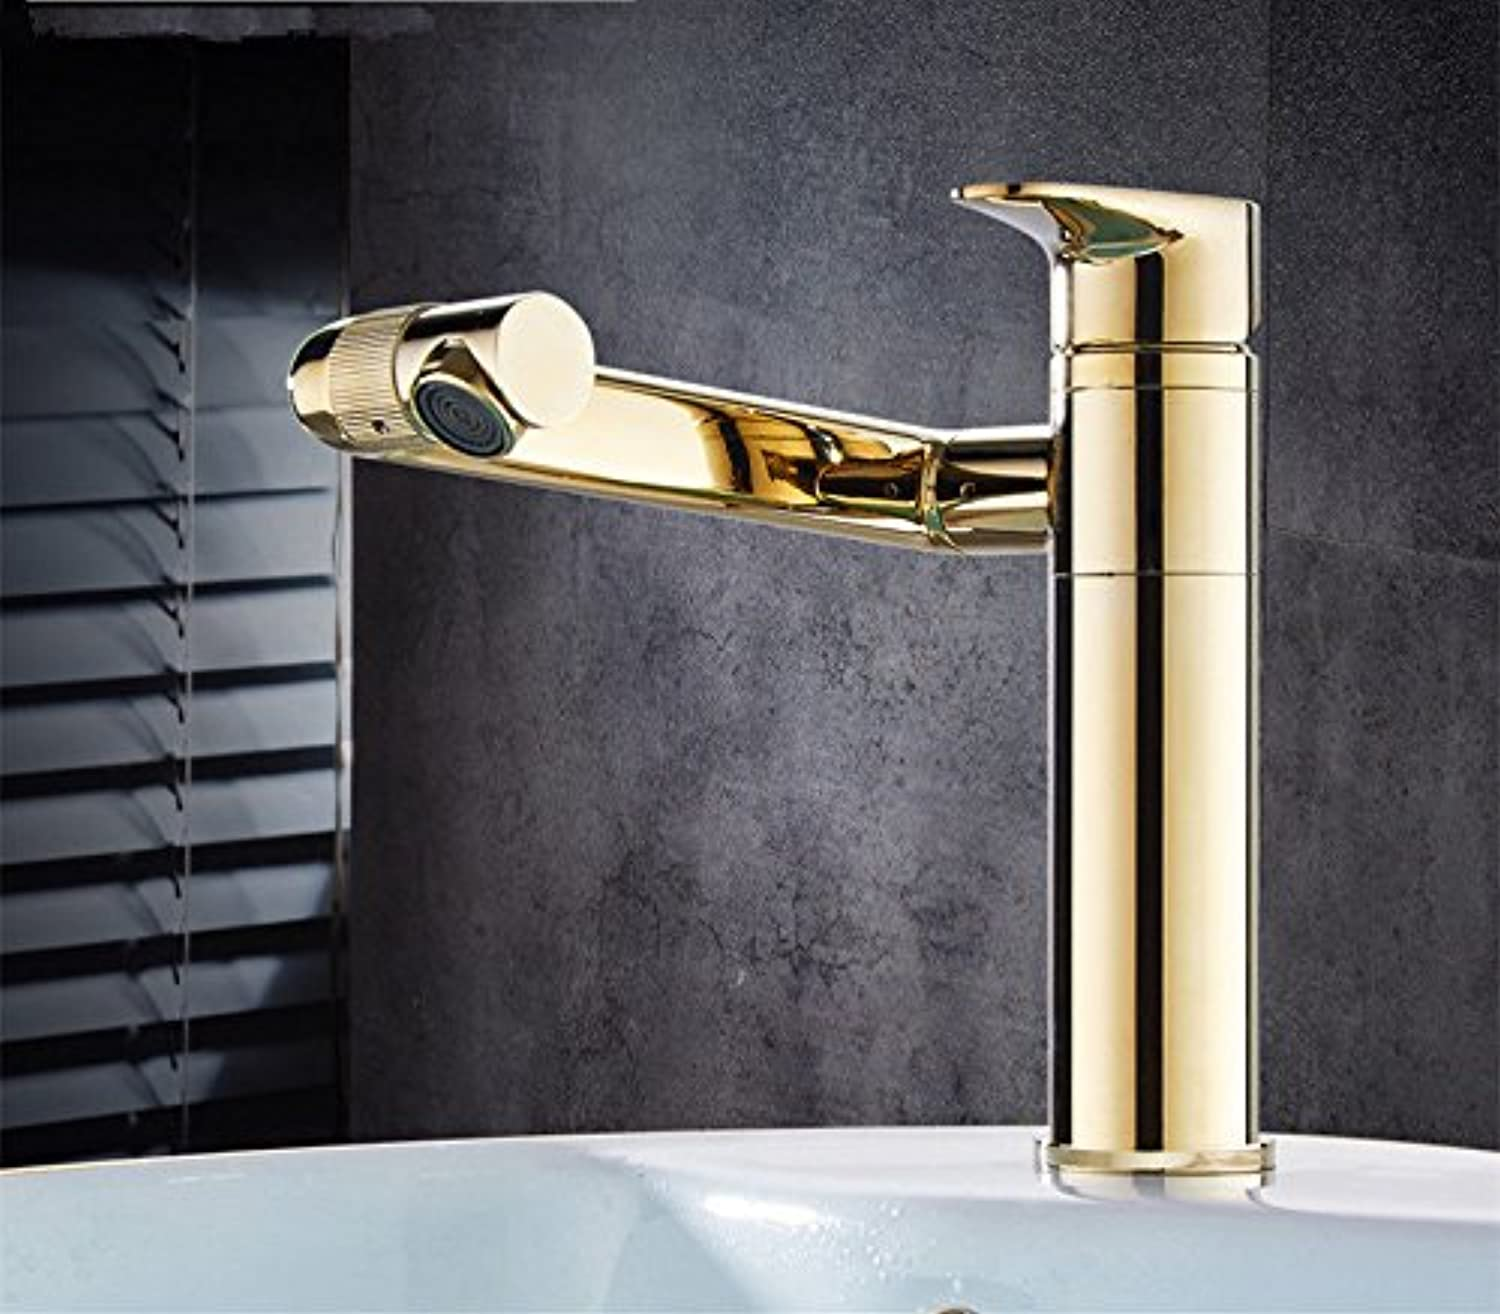 AQMMi Bathroom Sink Mixer Tap Brass 1 Hole Hot and Cold Water Swivel gold Single Lever Taps for Bathroom Sink